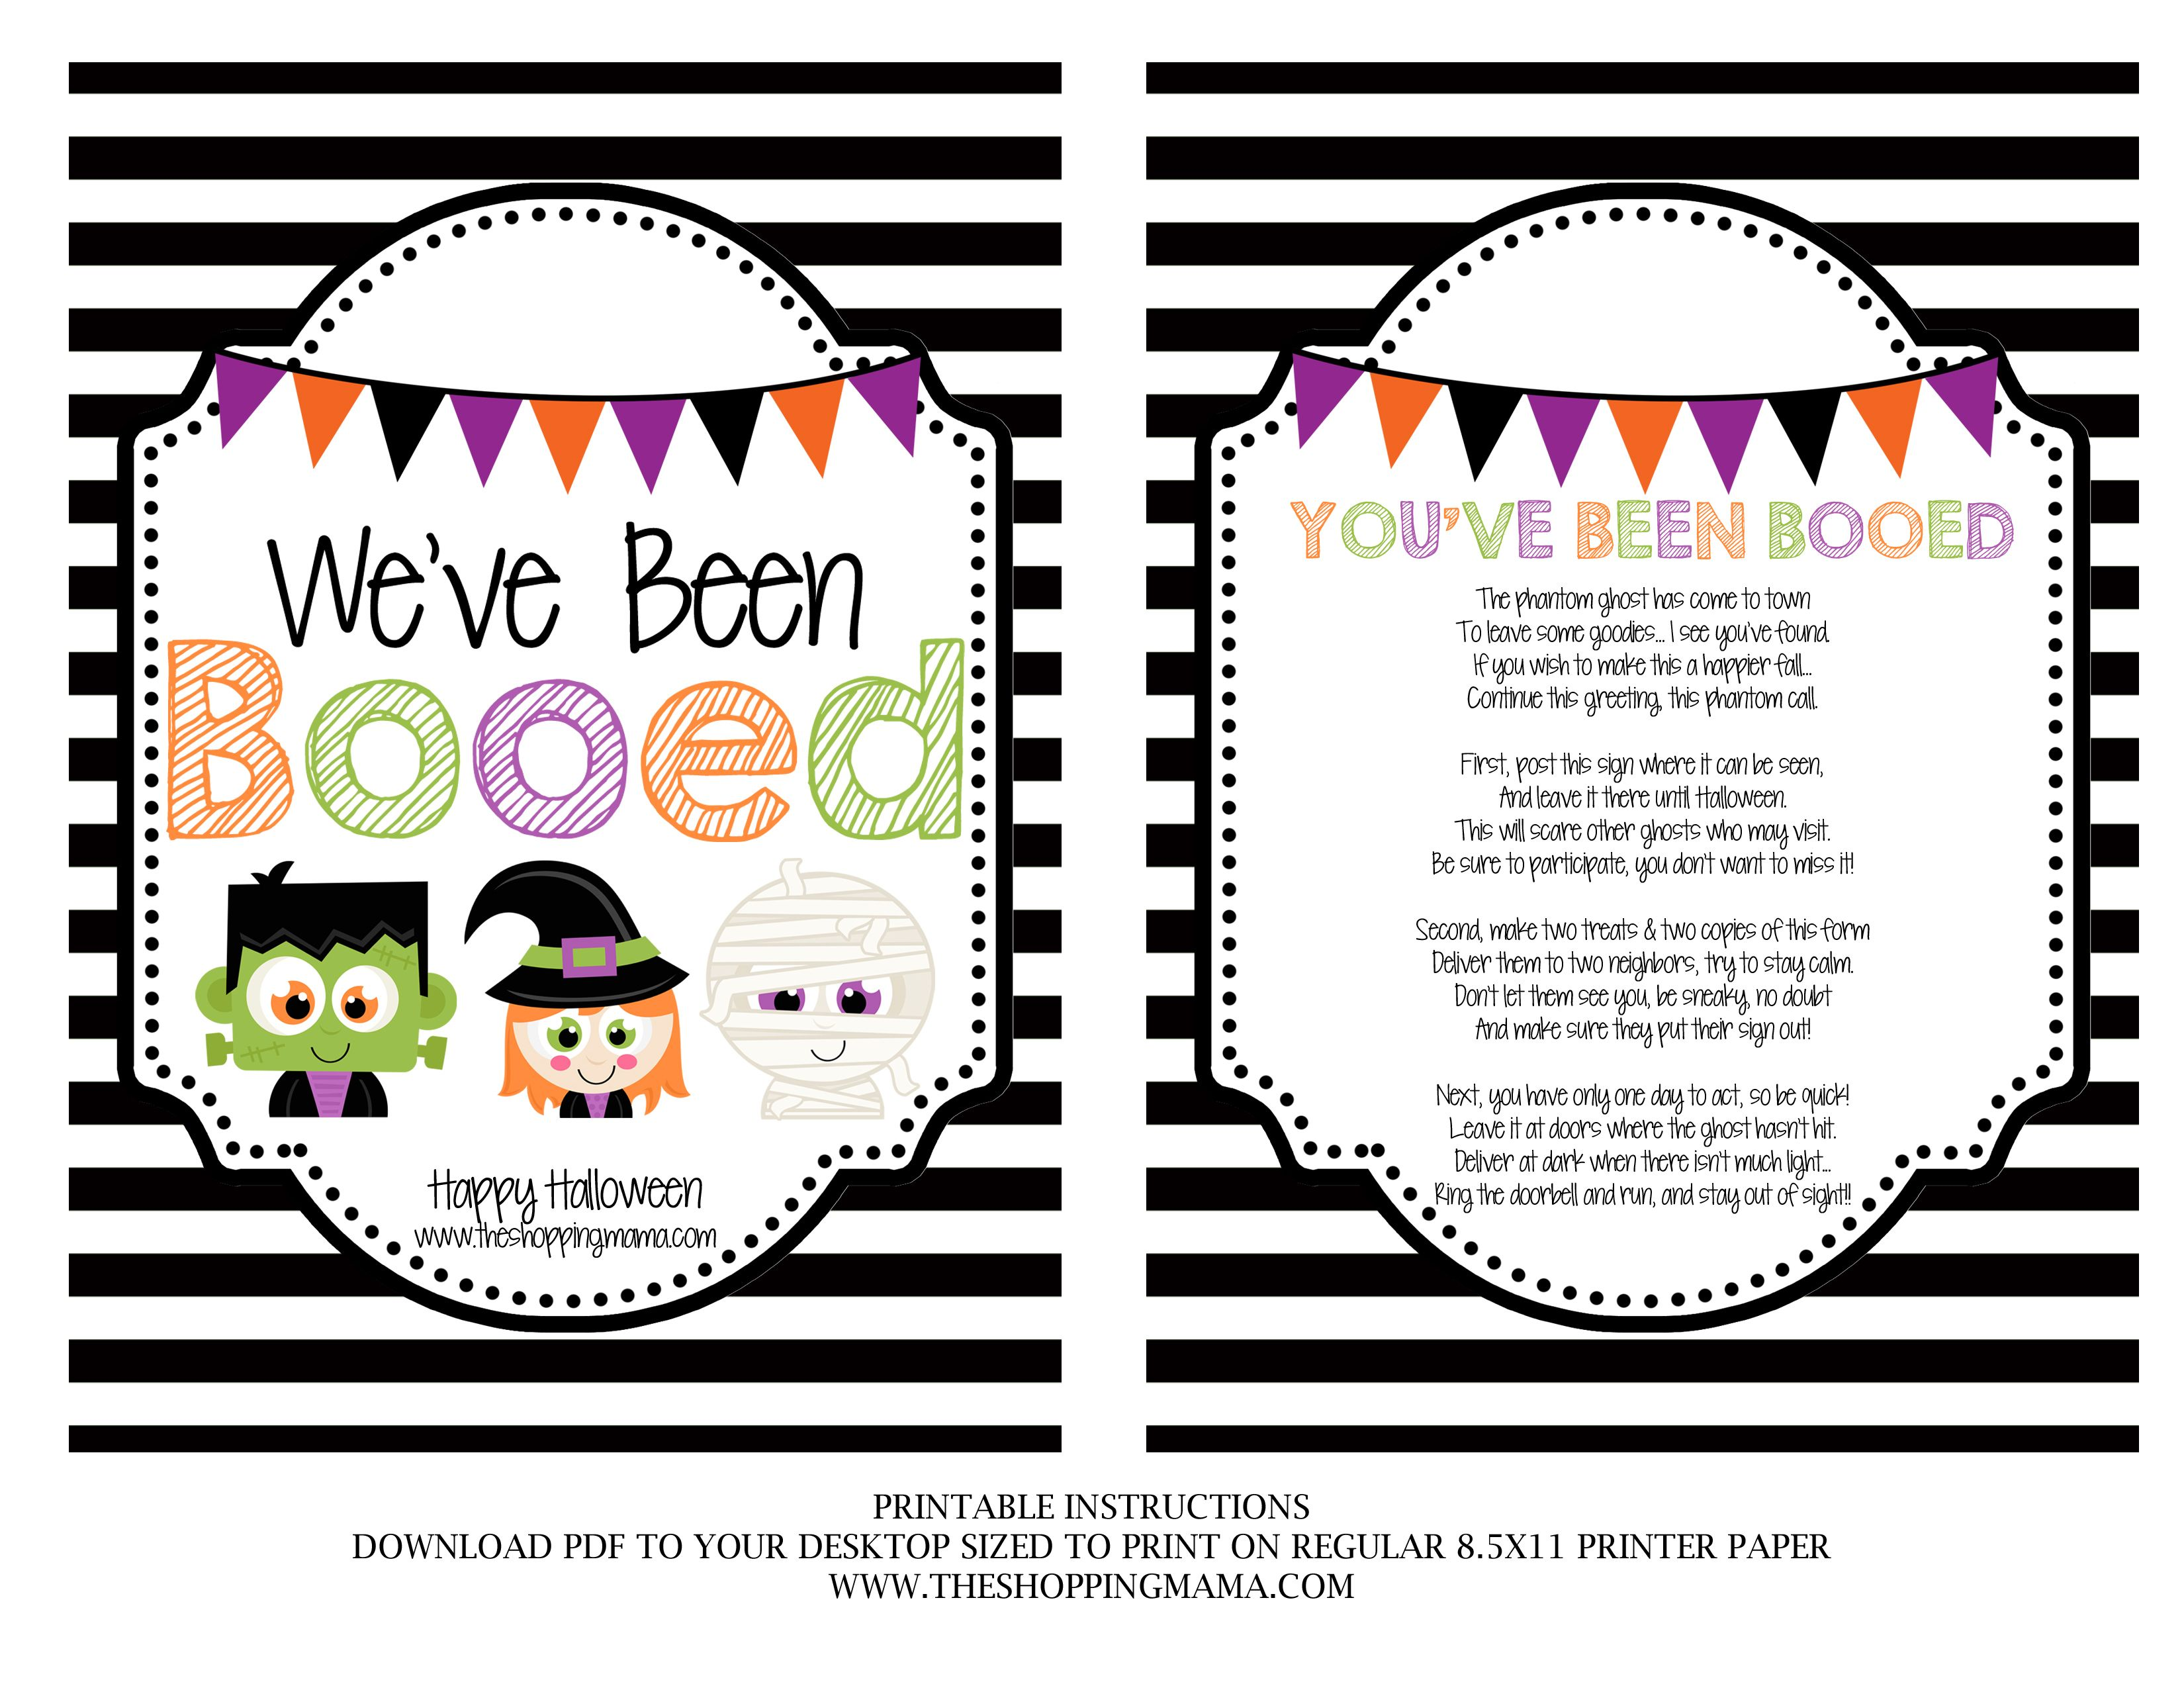 graphic relating to You've Been Booed Printable Pdf called Weve Been Booed! Halloween Boo online games, Boo indicator, Youve